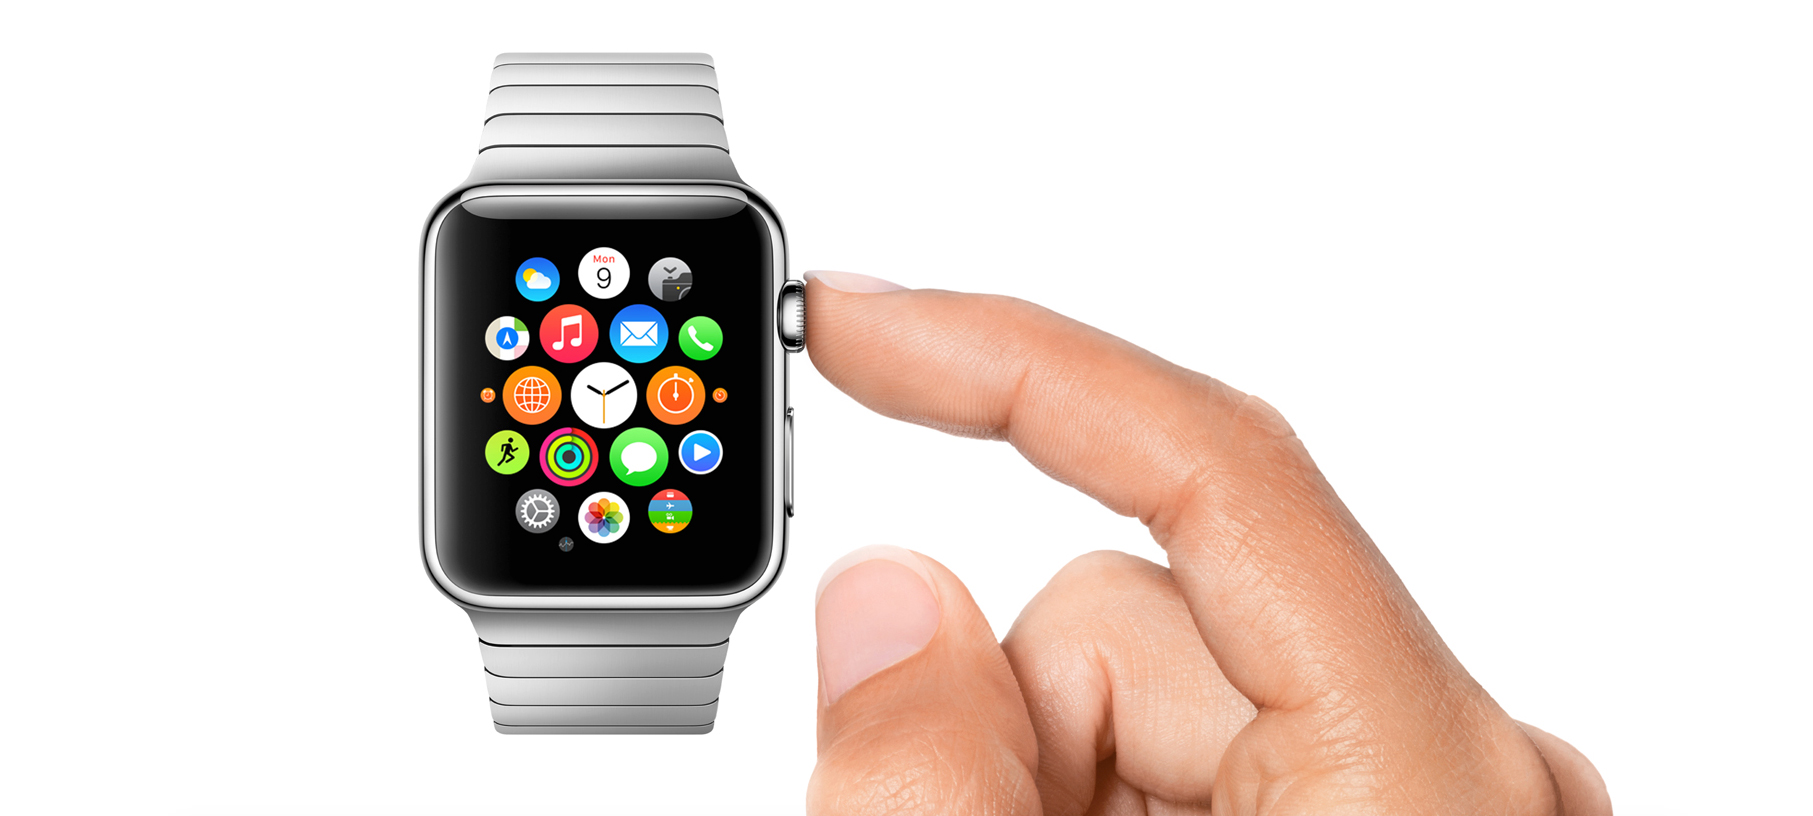 Yet another glitch rears its ugly head with Apple Watch